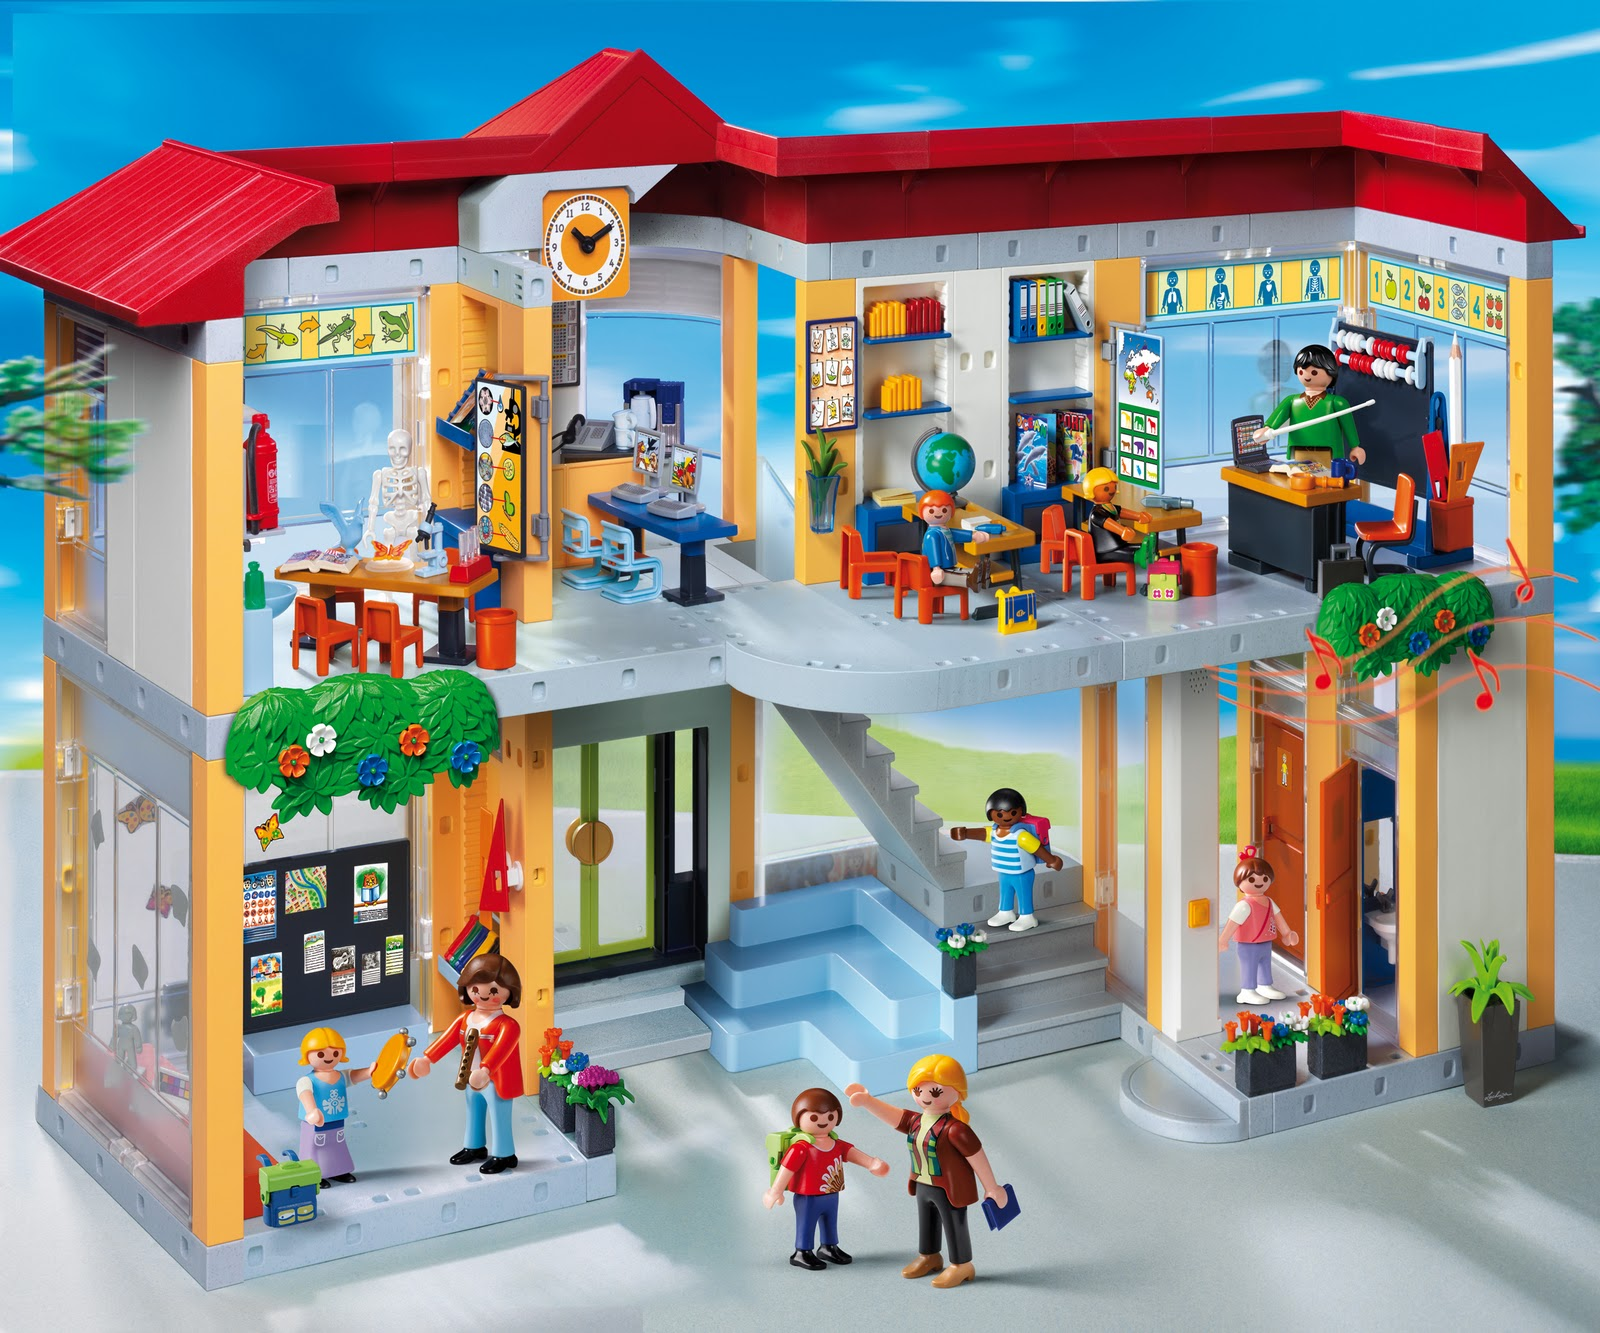 Playmobil_4324_Furnished-School-Building.jpg